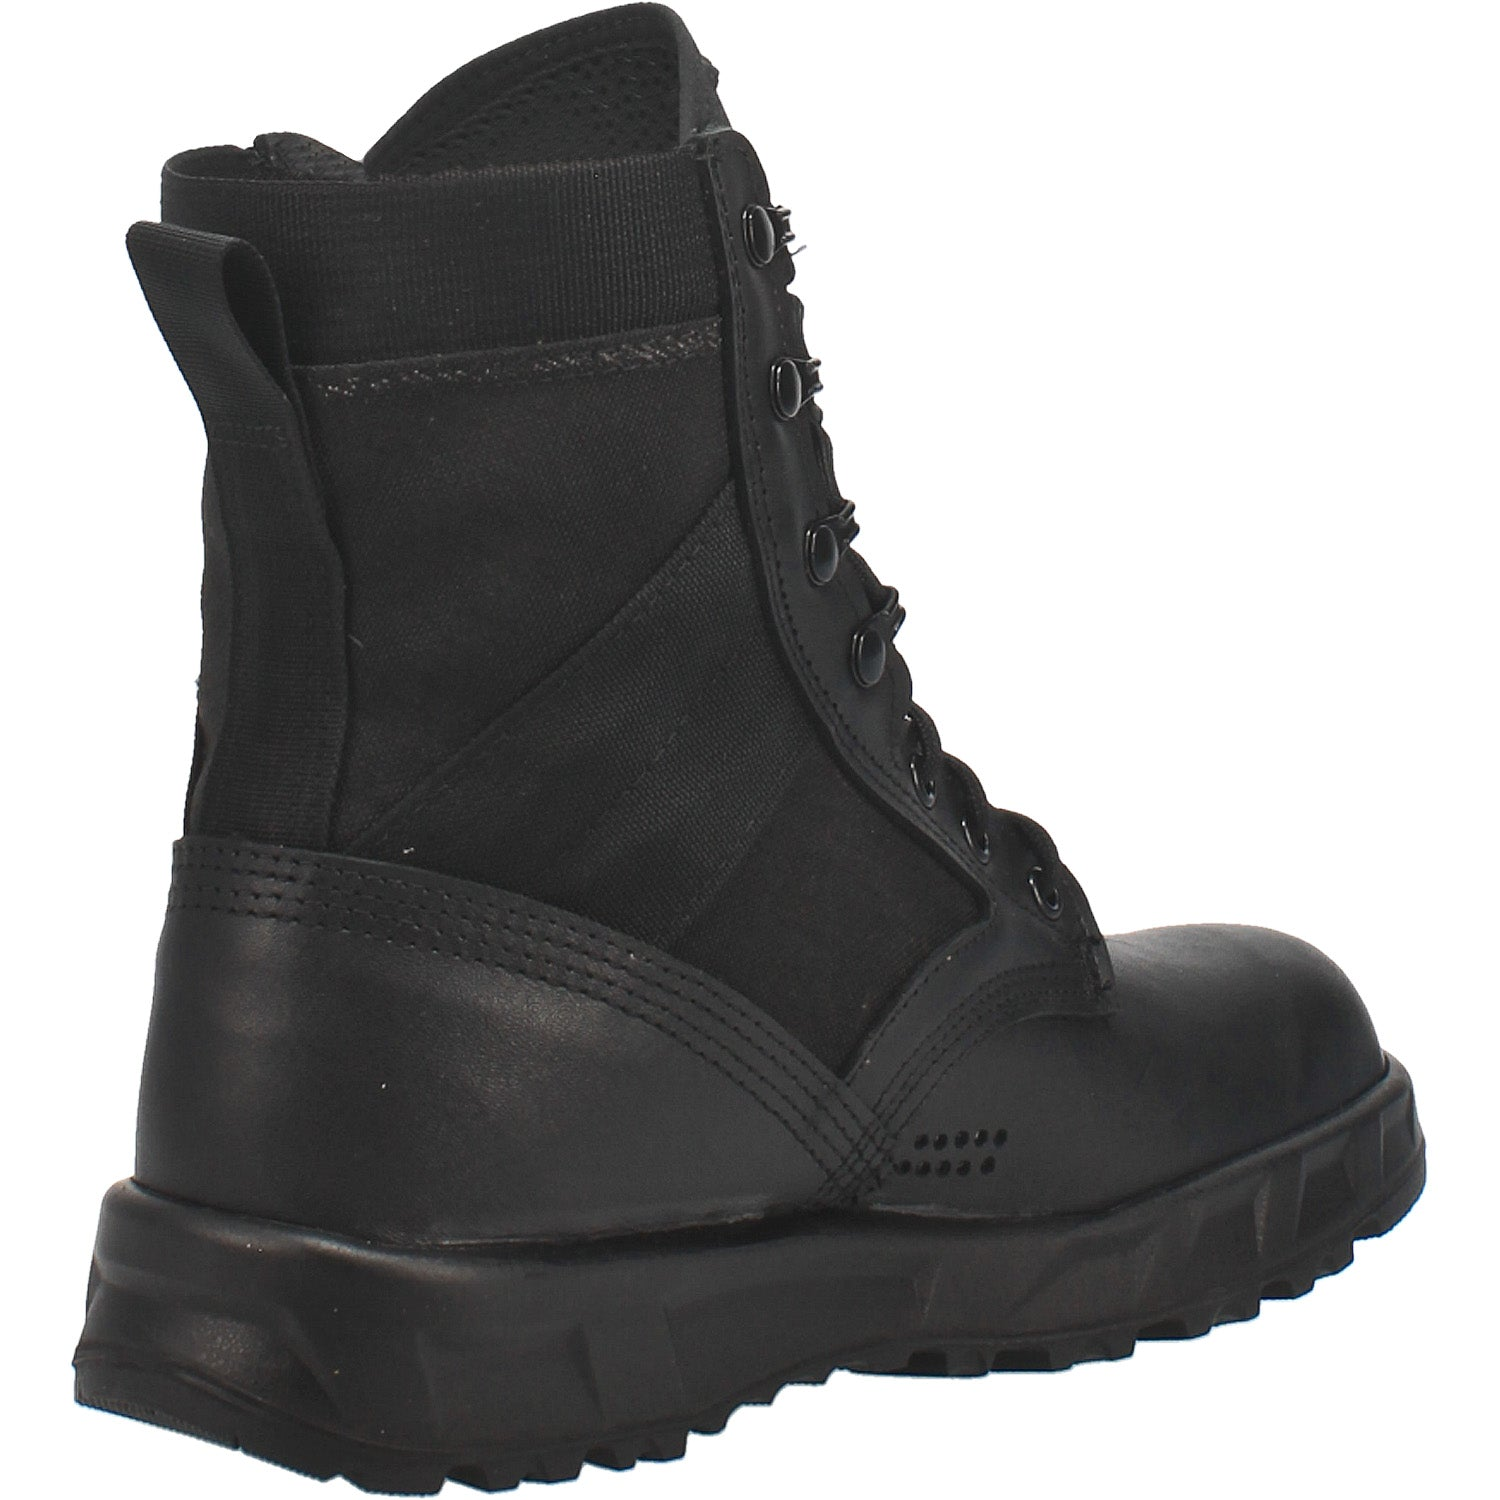 T2 Ultra Light Hot Weather Combat Boot 27986663079978